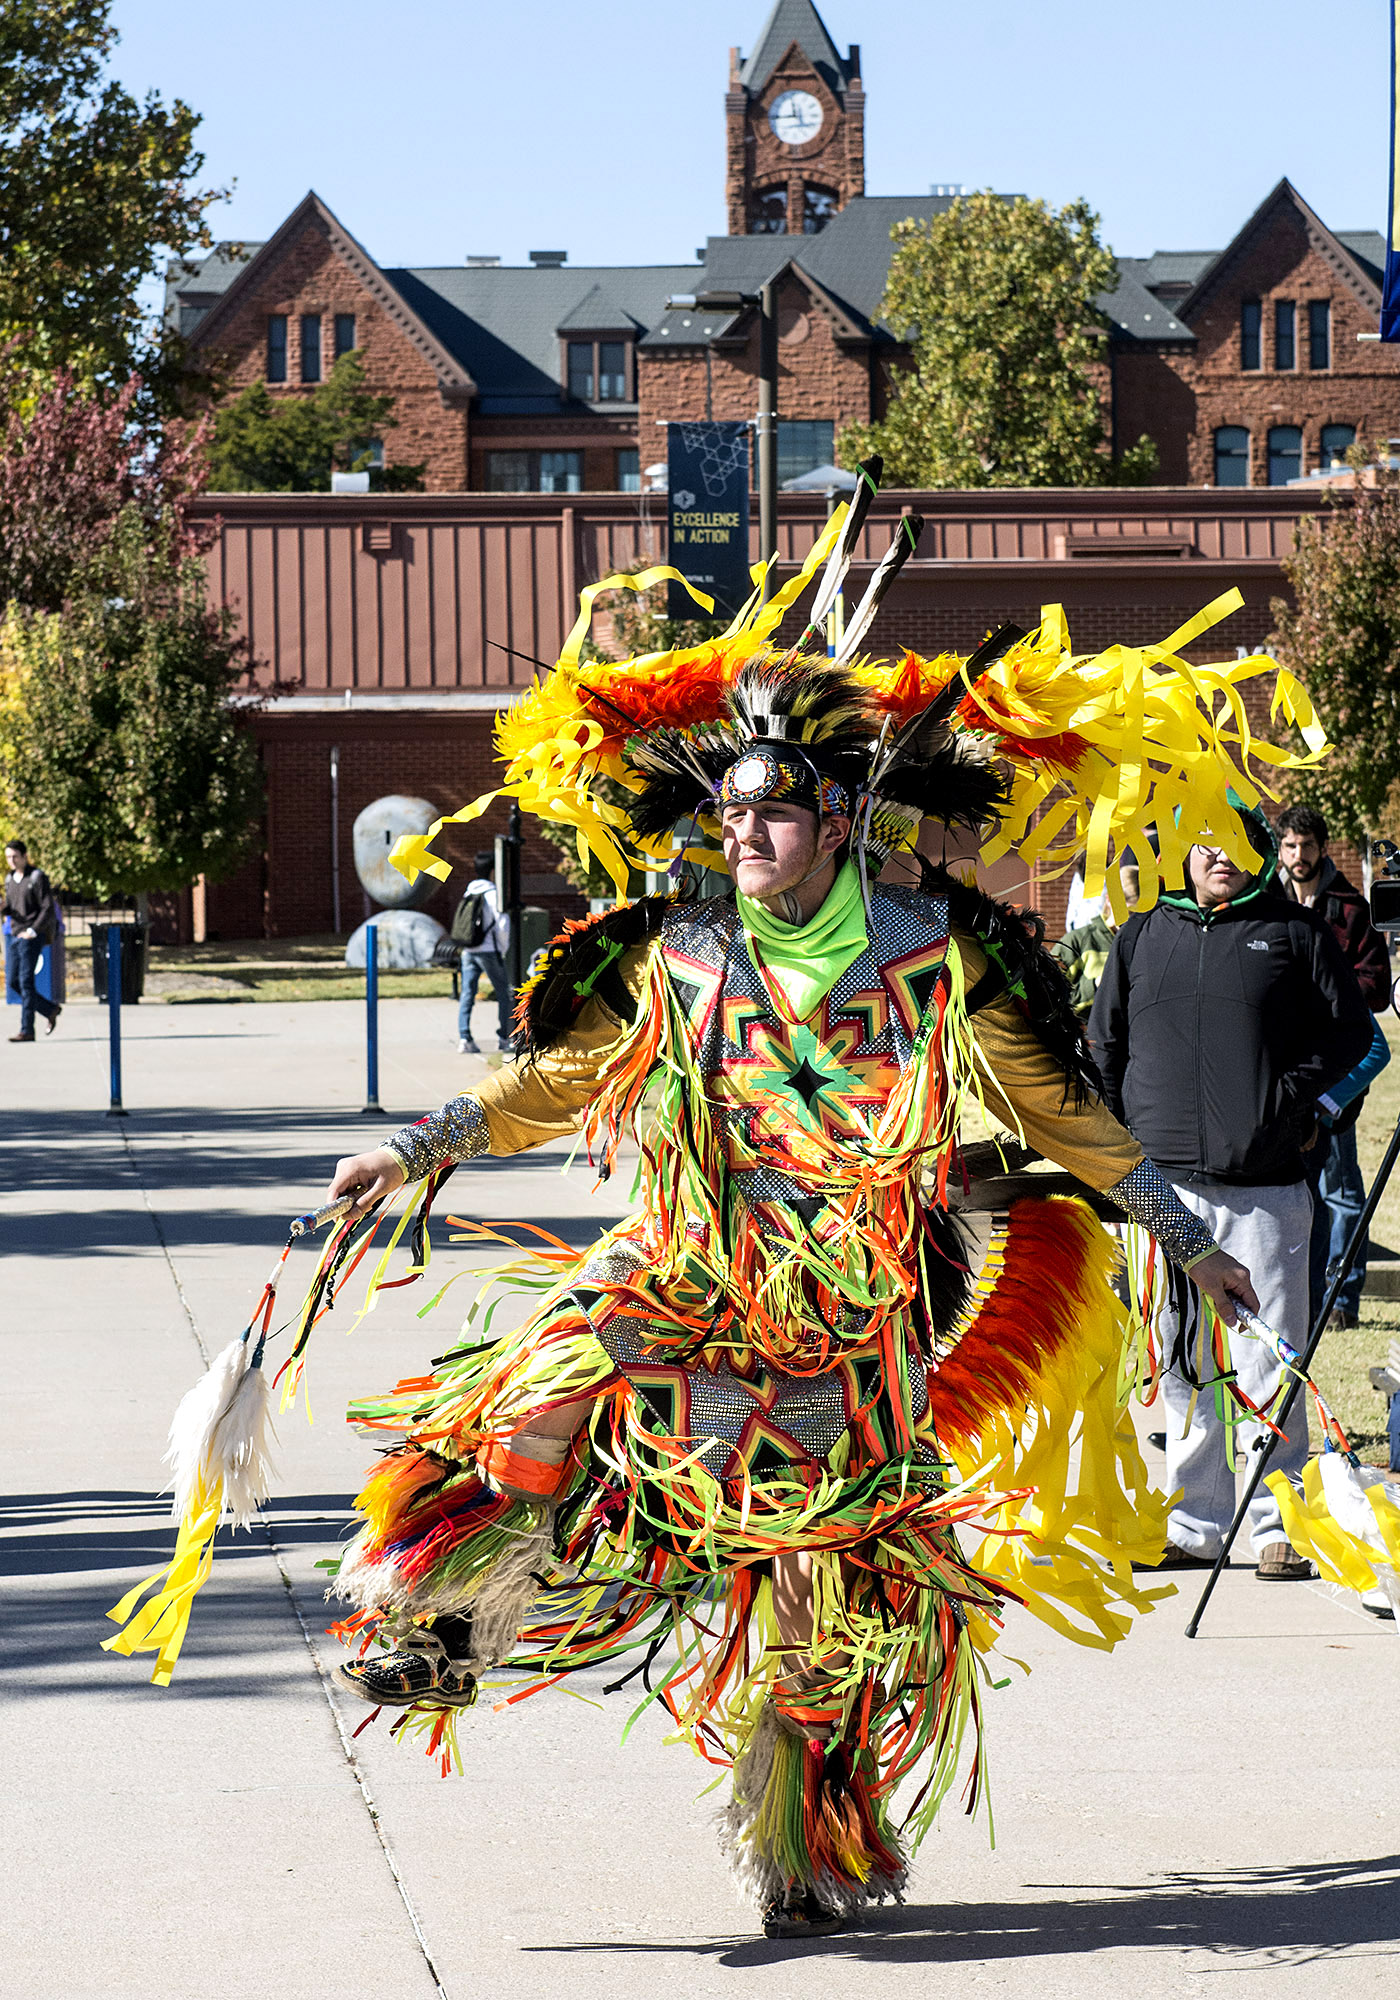 The University of Central Oklahoma will host its annual Spring Powwow at 2 p.m. April 13 in Hamilton Field House on campus.